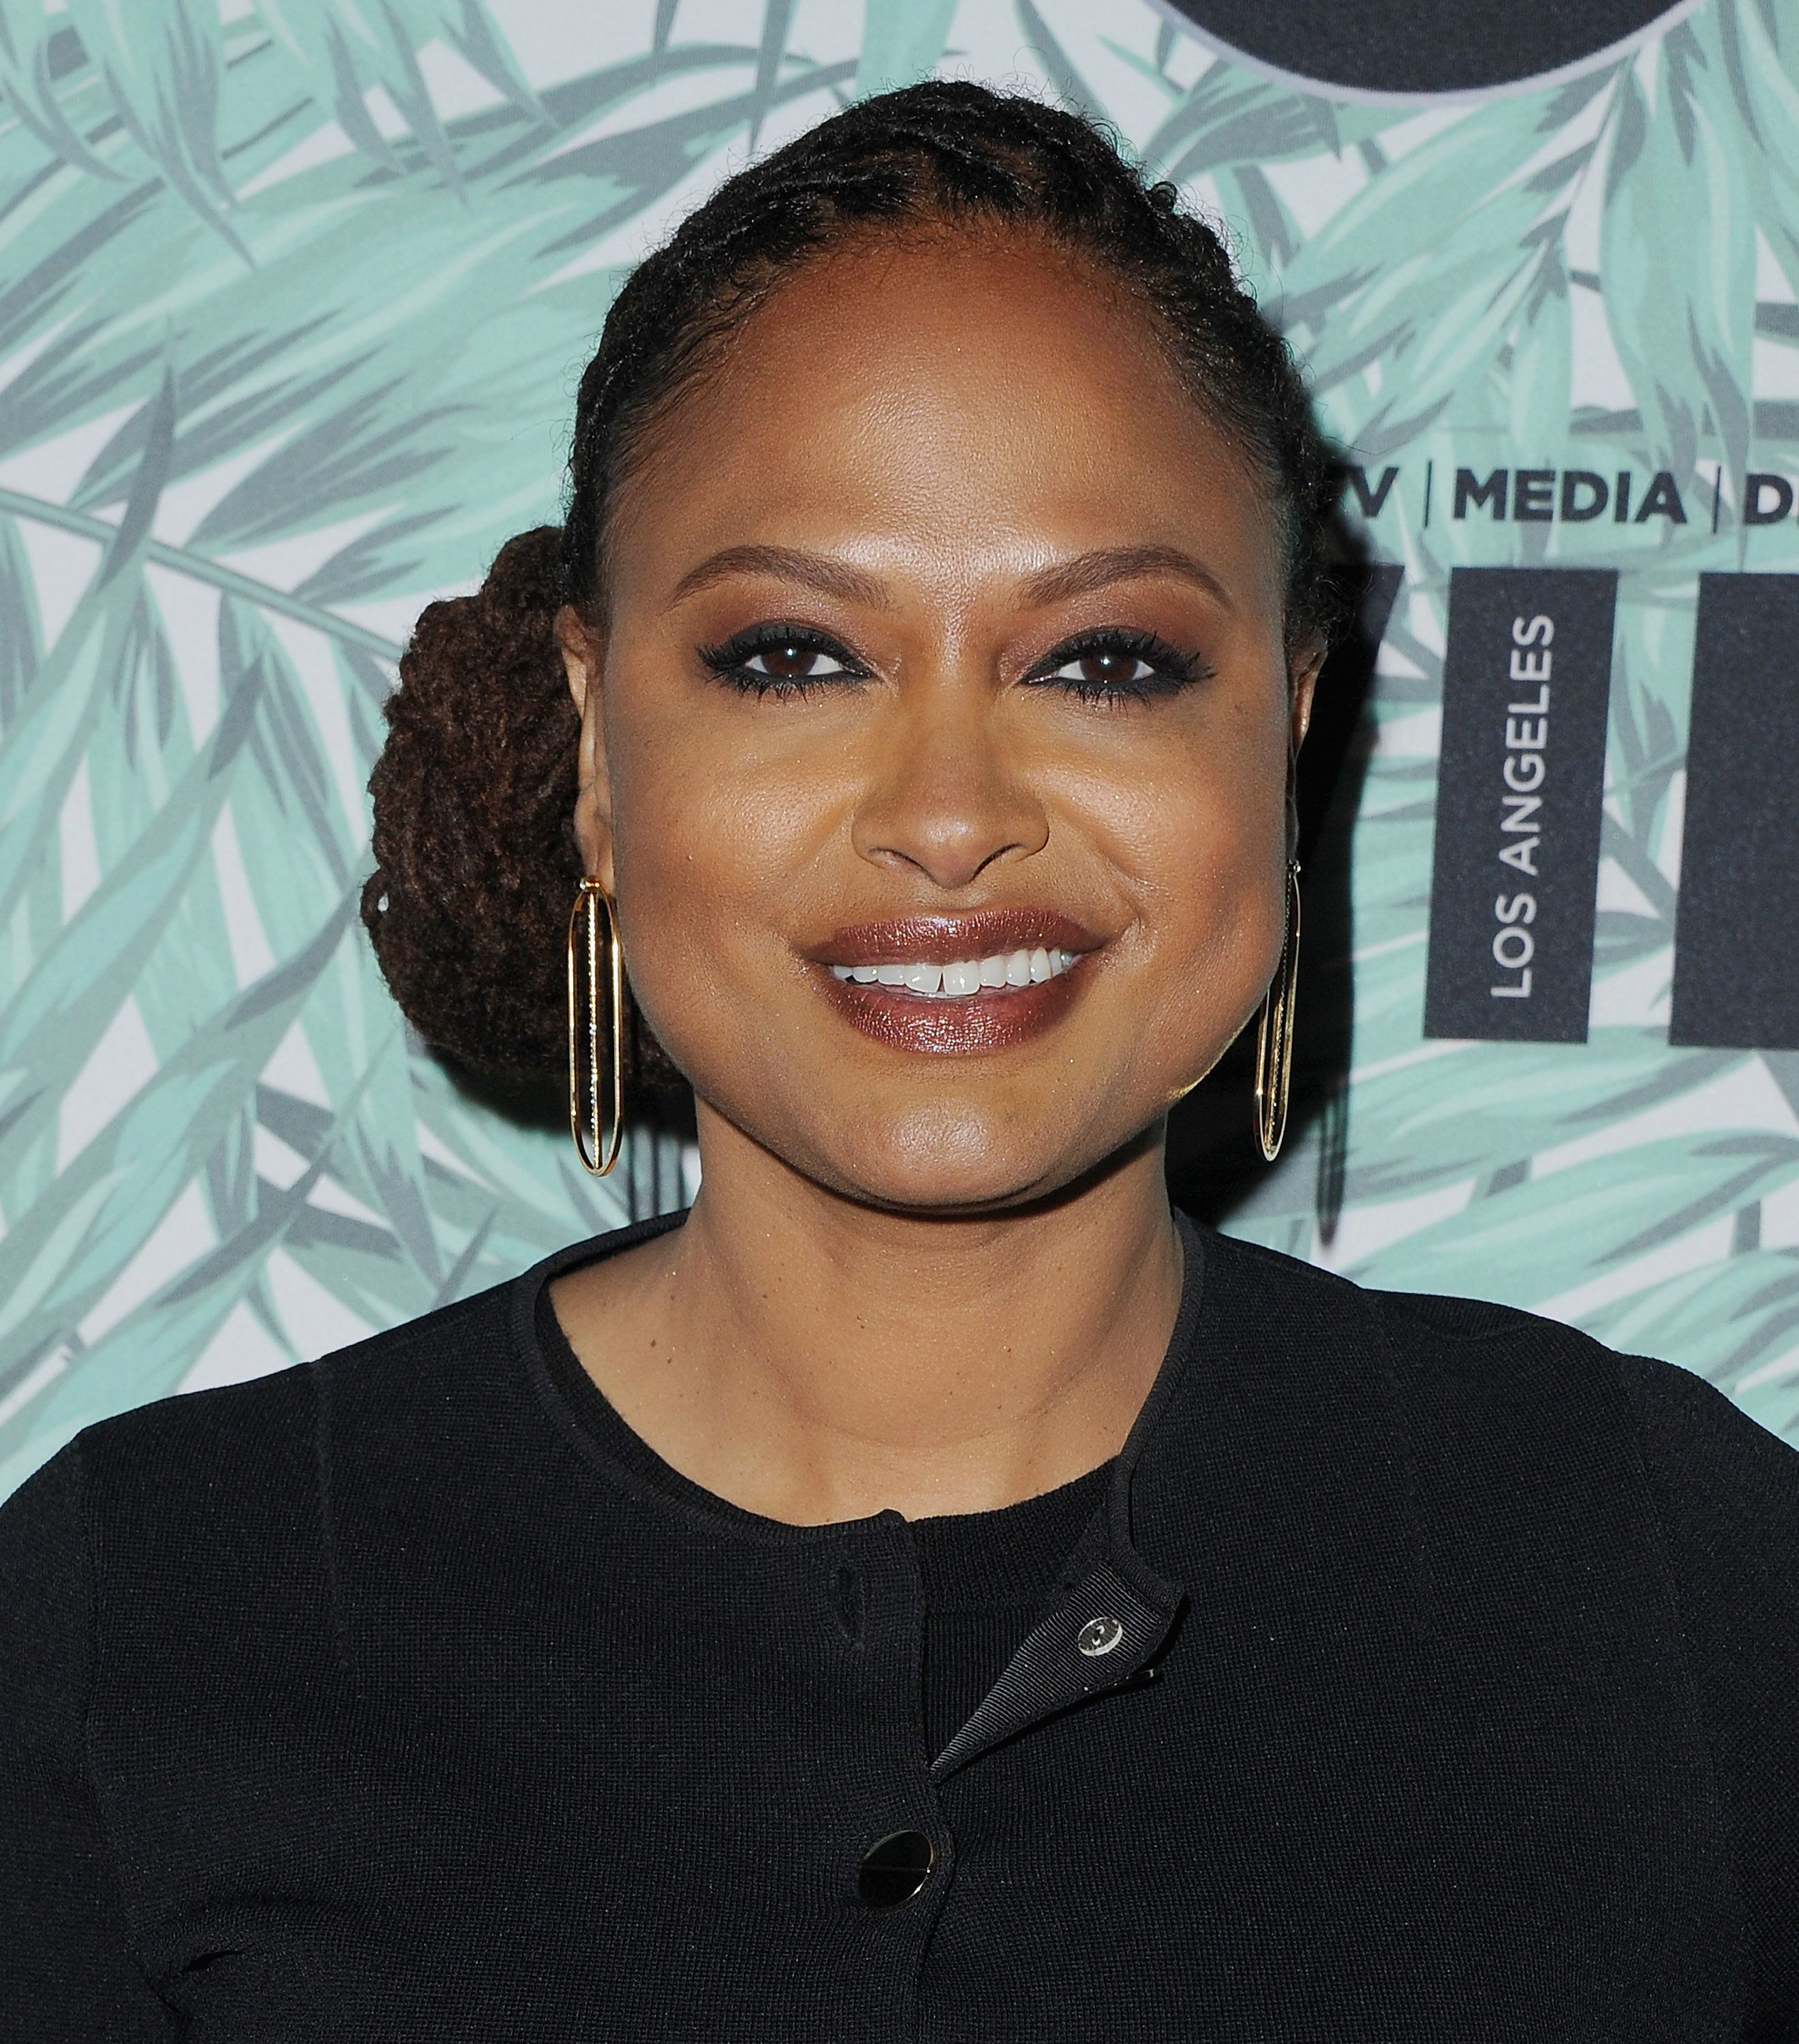 LOS ANGELES, CA - FEBRUARY 24:  Ava DuVernay arrives at the 10th Annual Women In Film Pre-Oscar Cocktail Party at Nightingale Plaza on February 24, 2017 in Los Angeles, California.  (Photo by Jon Kopaloff/FilmMagic)